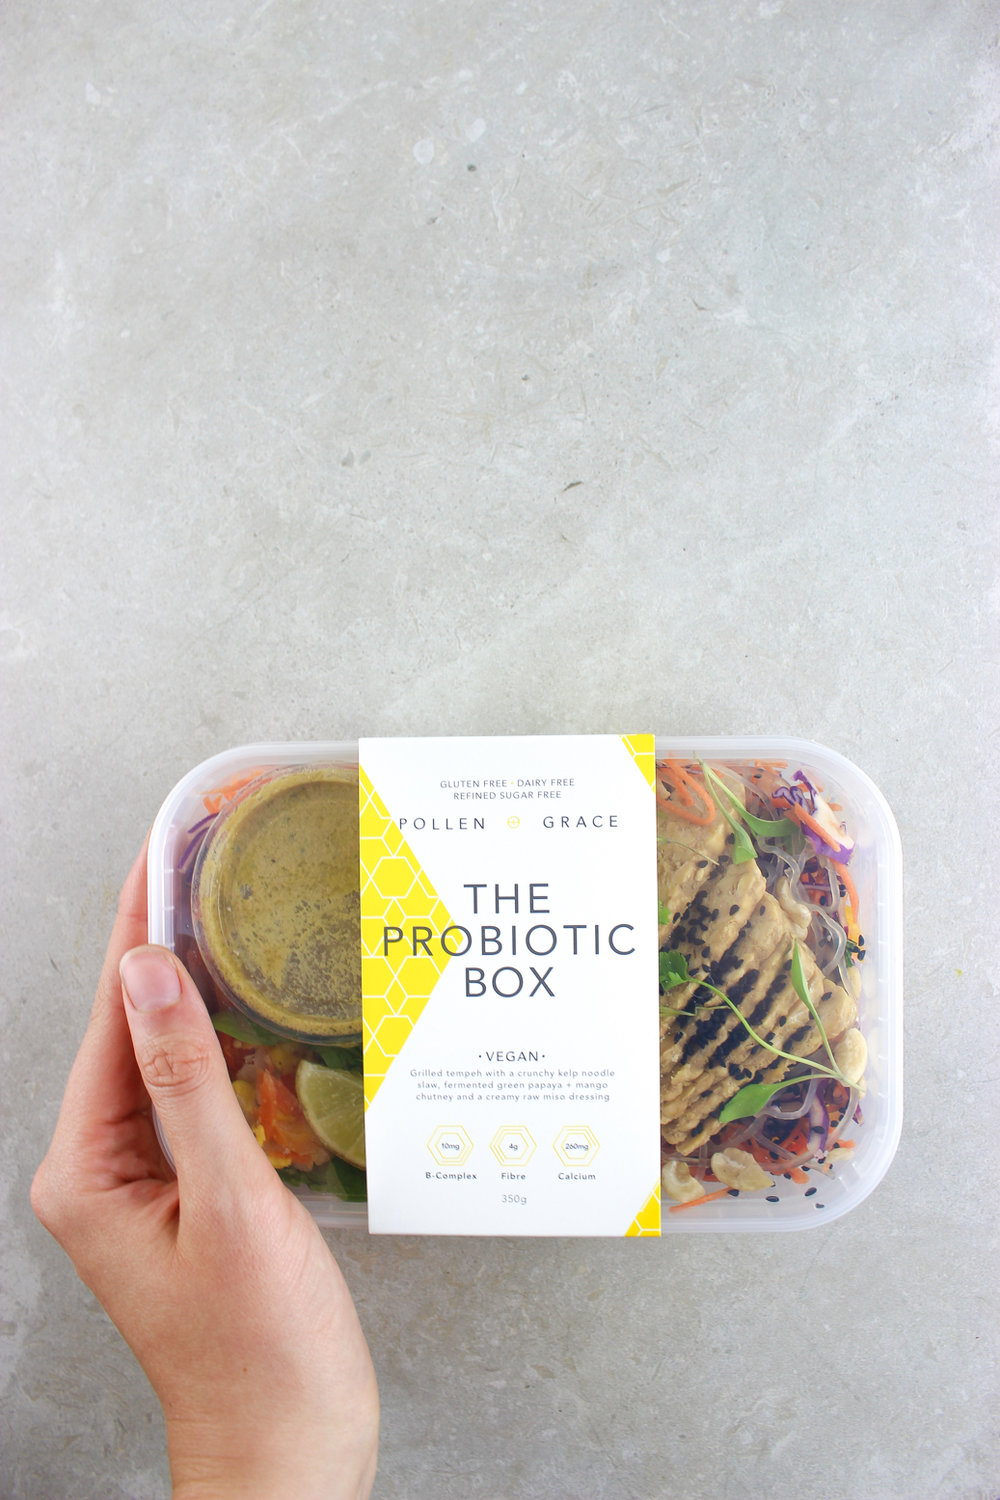 recyclable plastic packaging